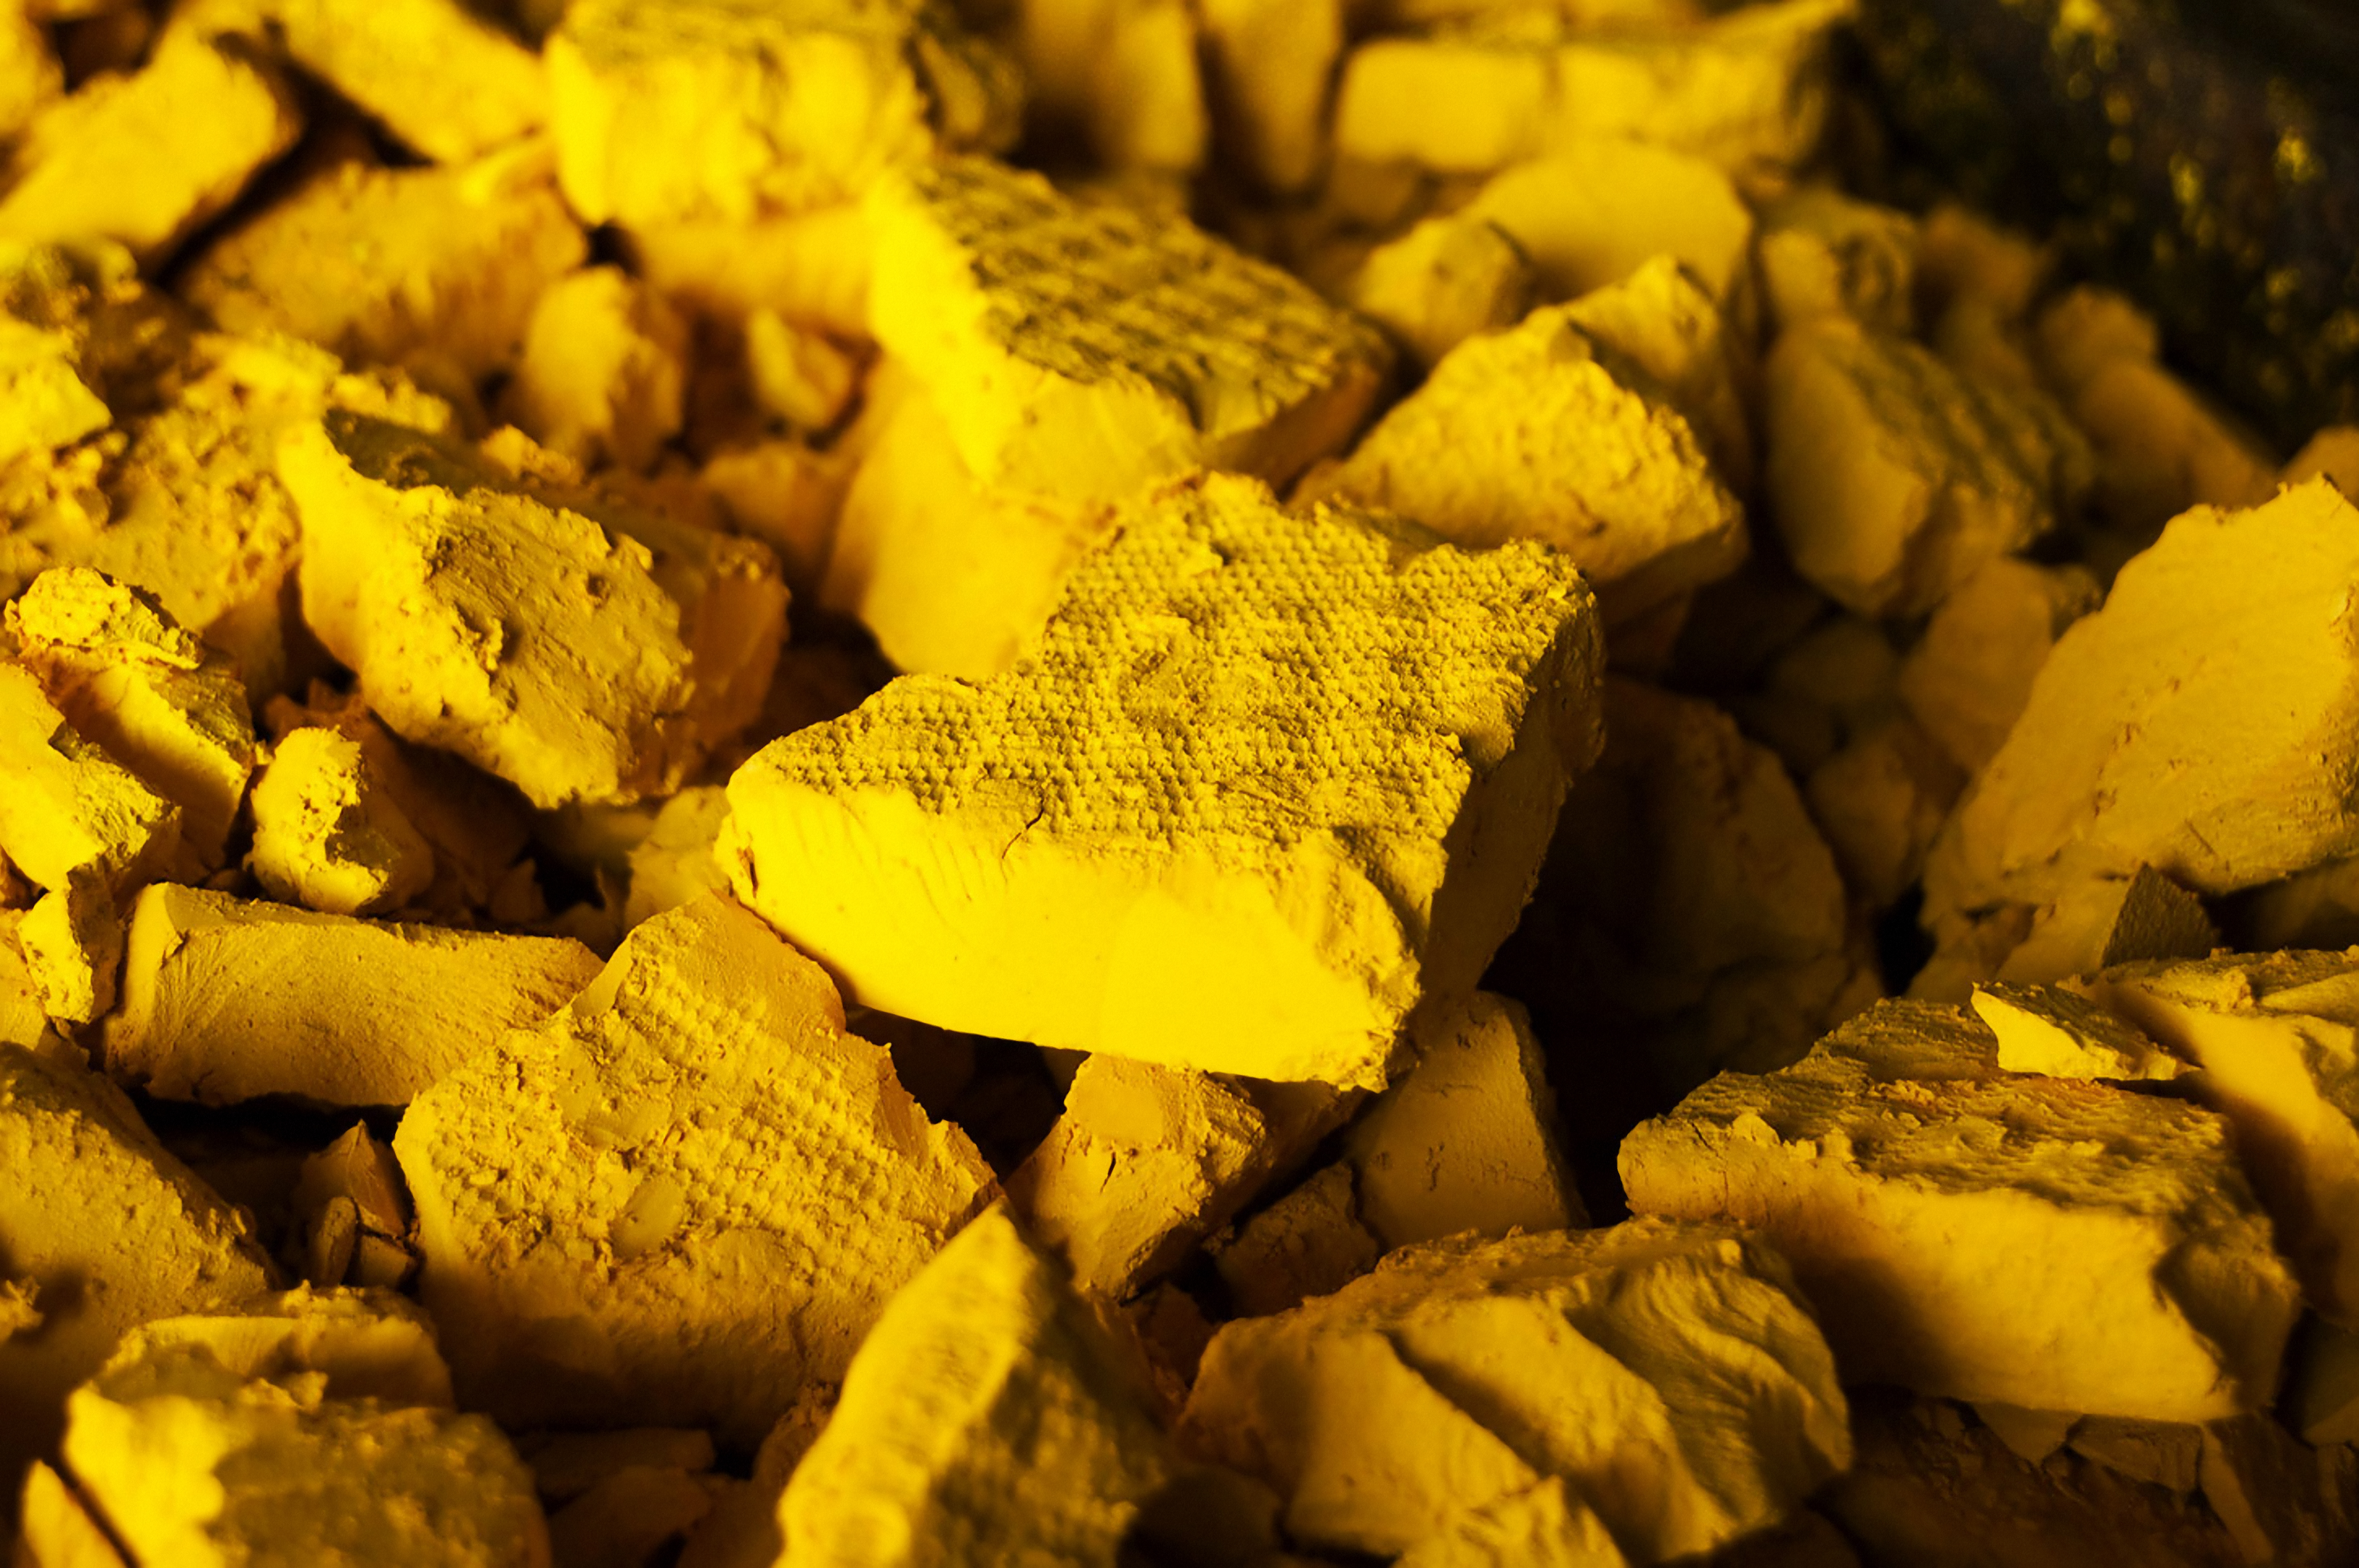 A photo of yellow cake uranium, a solid form of uranium oxide produced from uranium ore. (Nuclear Regulatory Commission via Flickr creative commons) https://creativecommons.org/licenses/by/2.0/